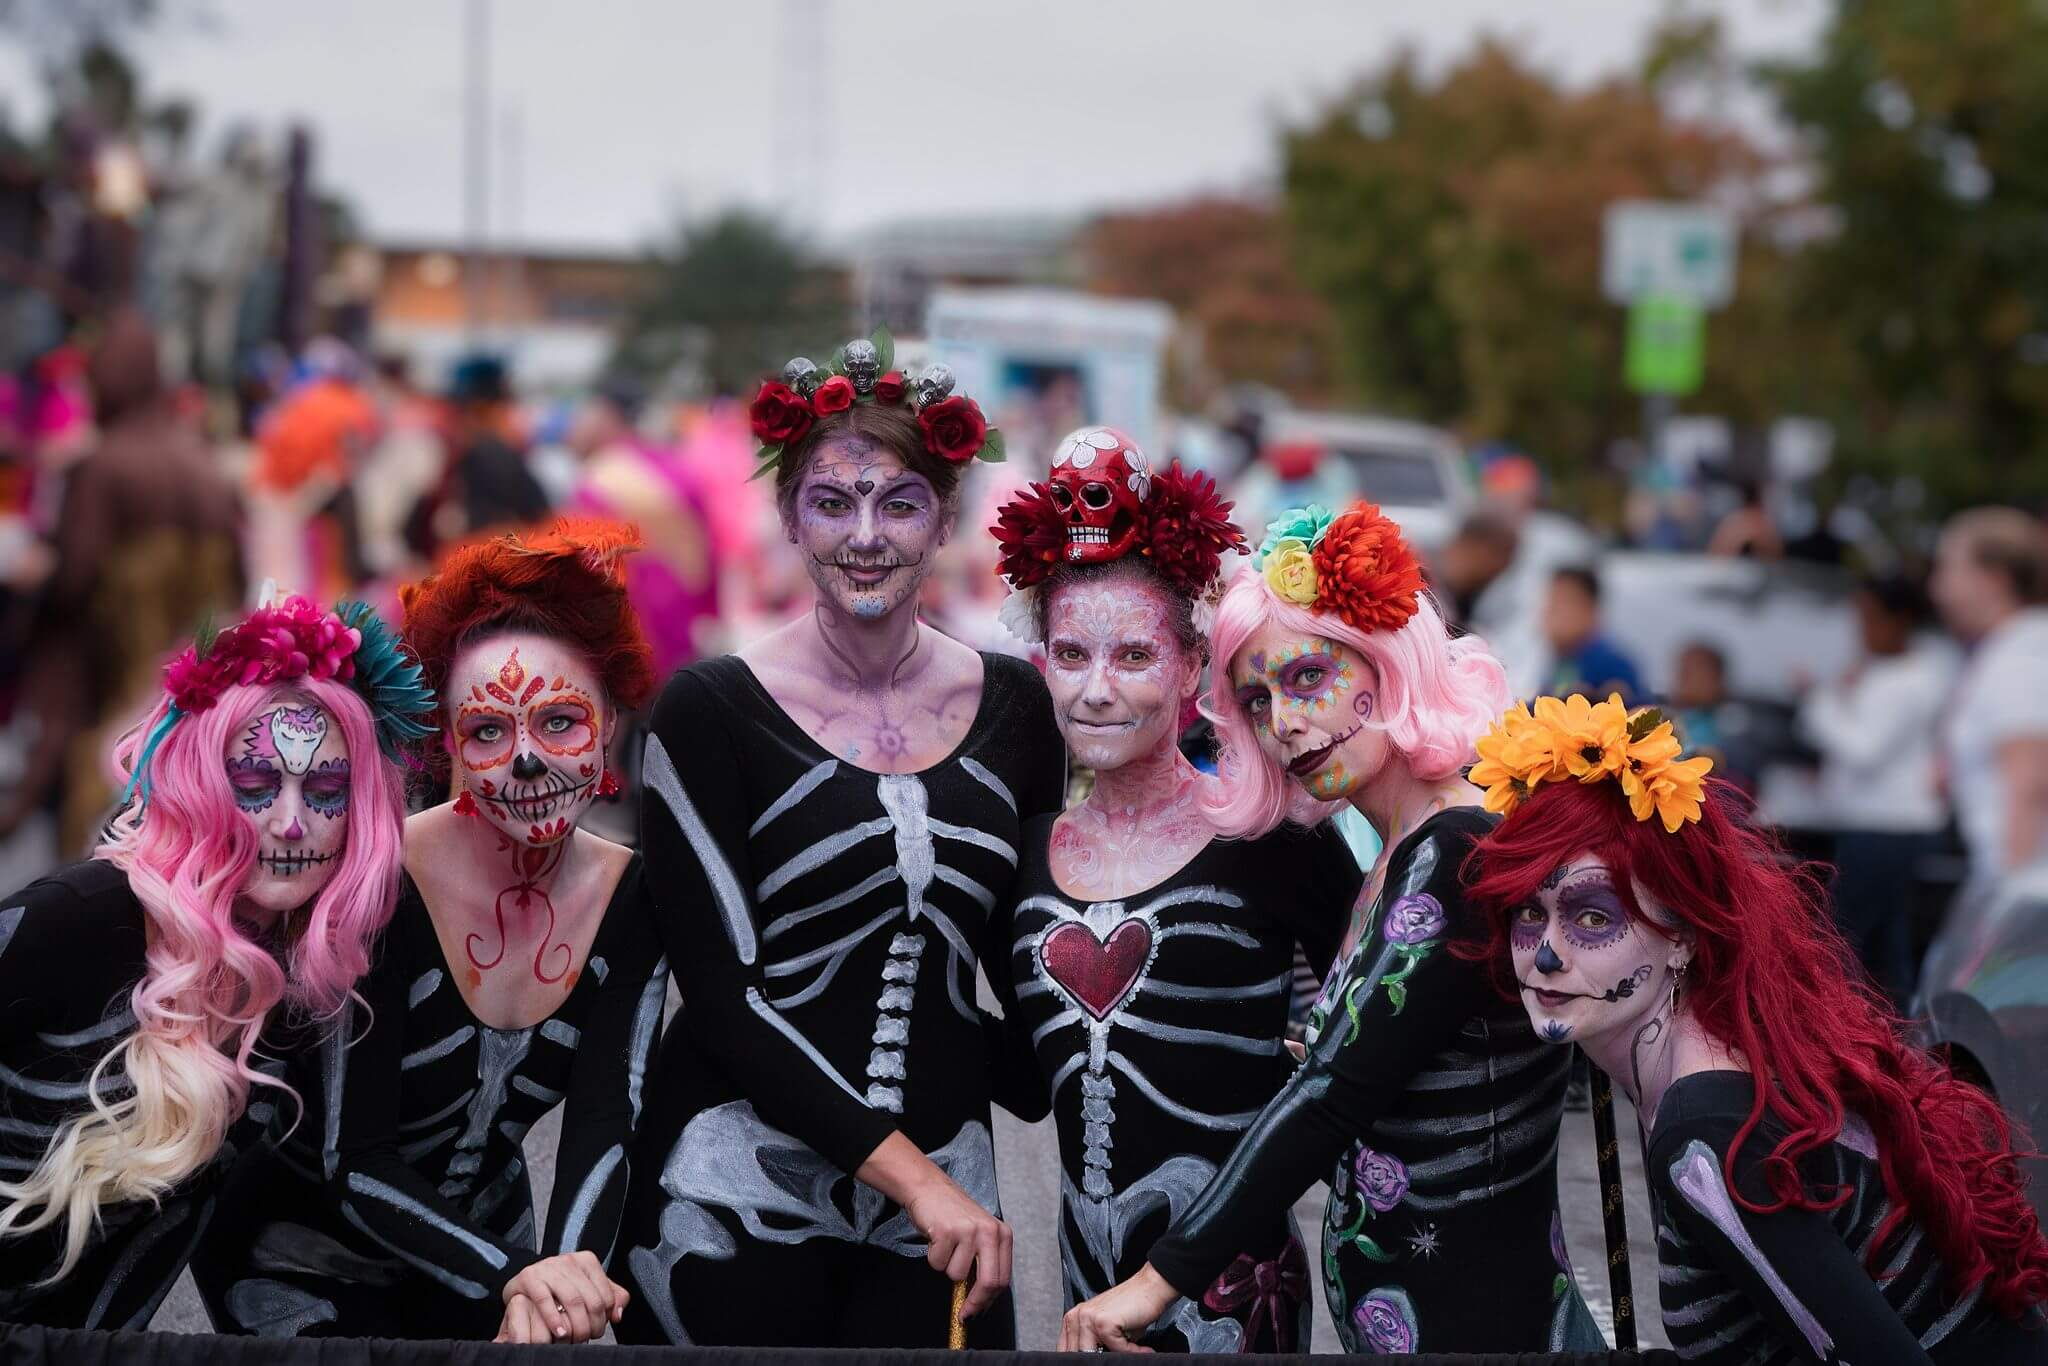 krewe of boo: halloween parade in new orleans